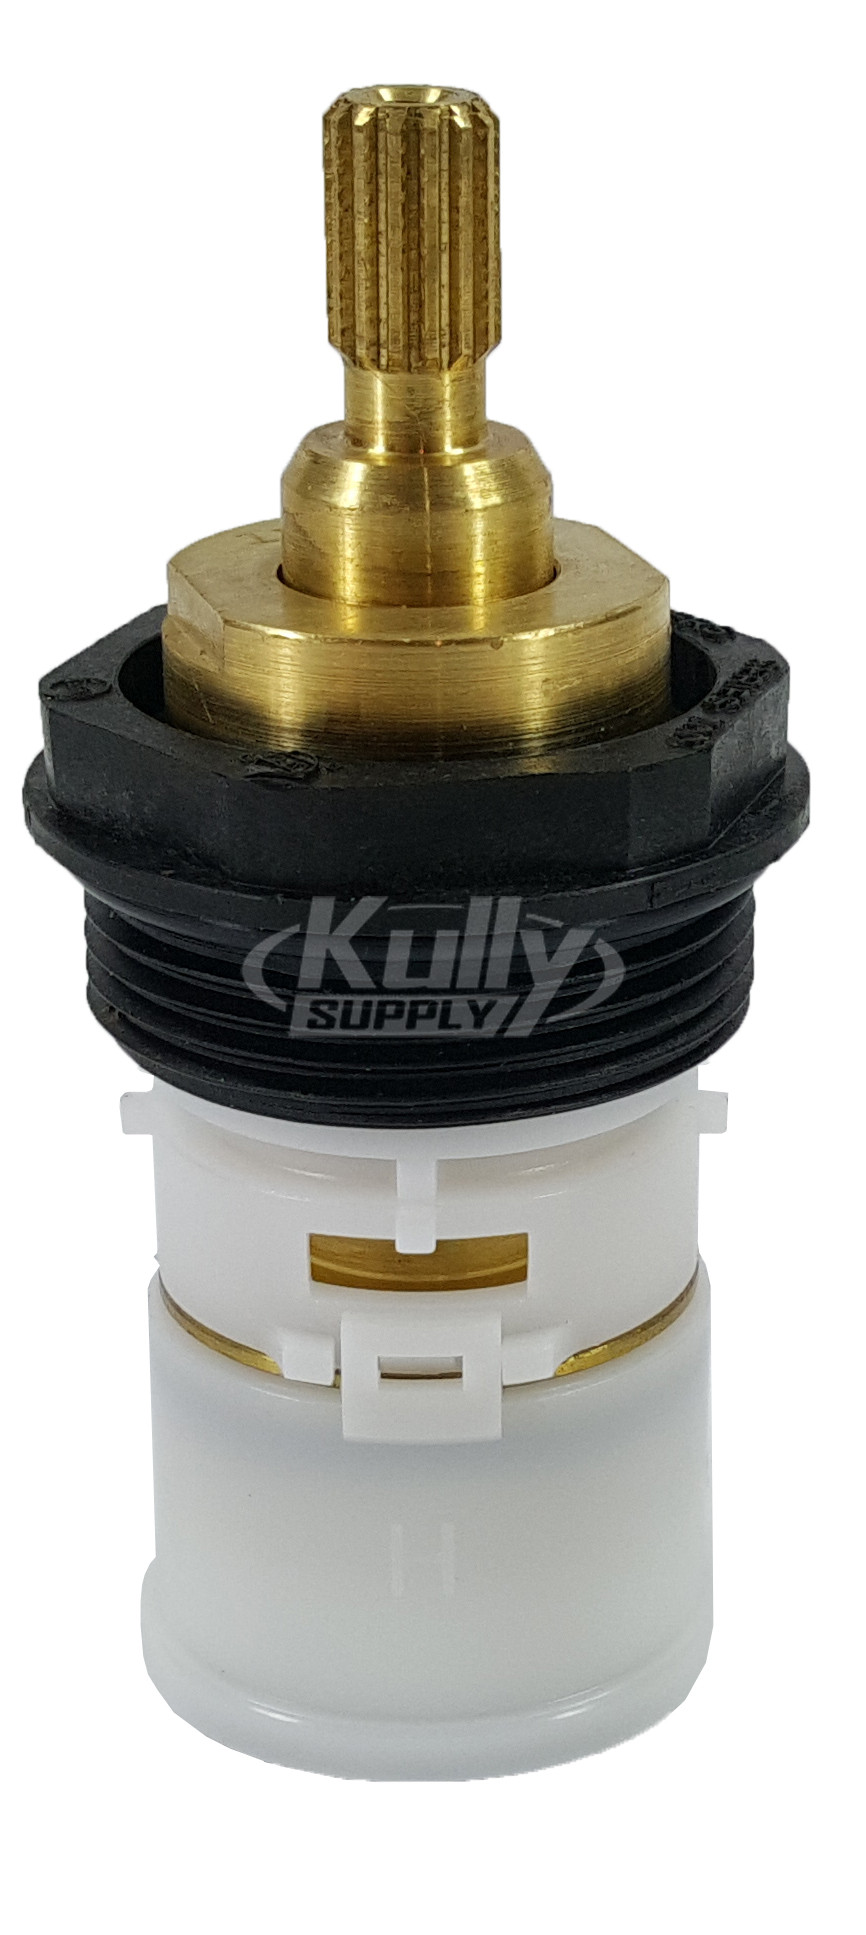 Powers 220 060 Cartridge Kit Kullysupply Com